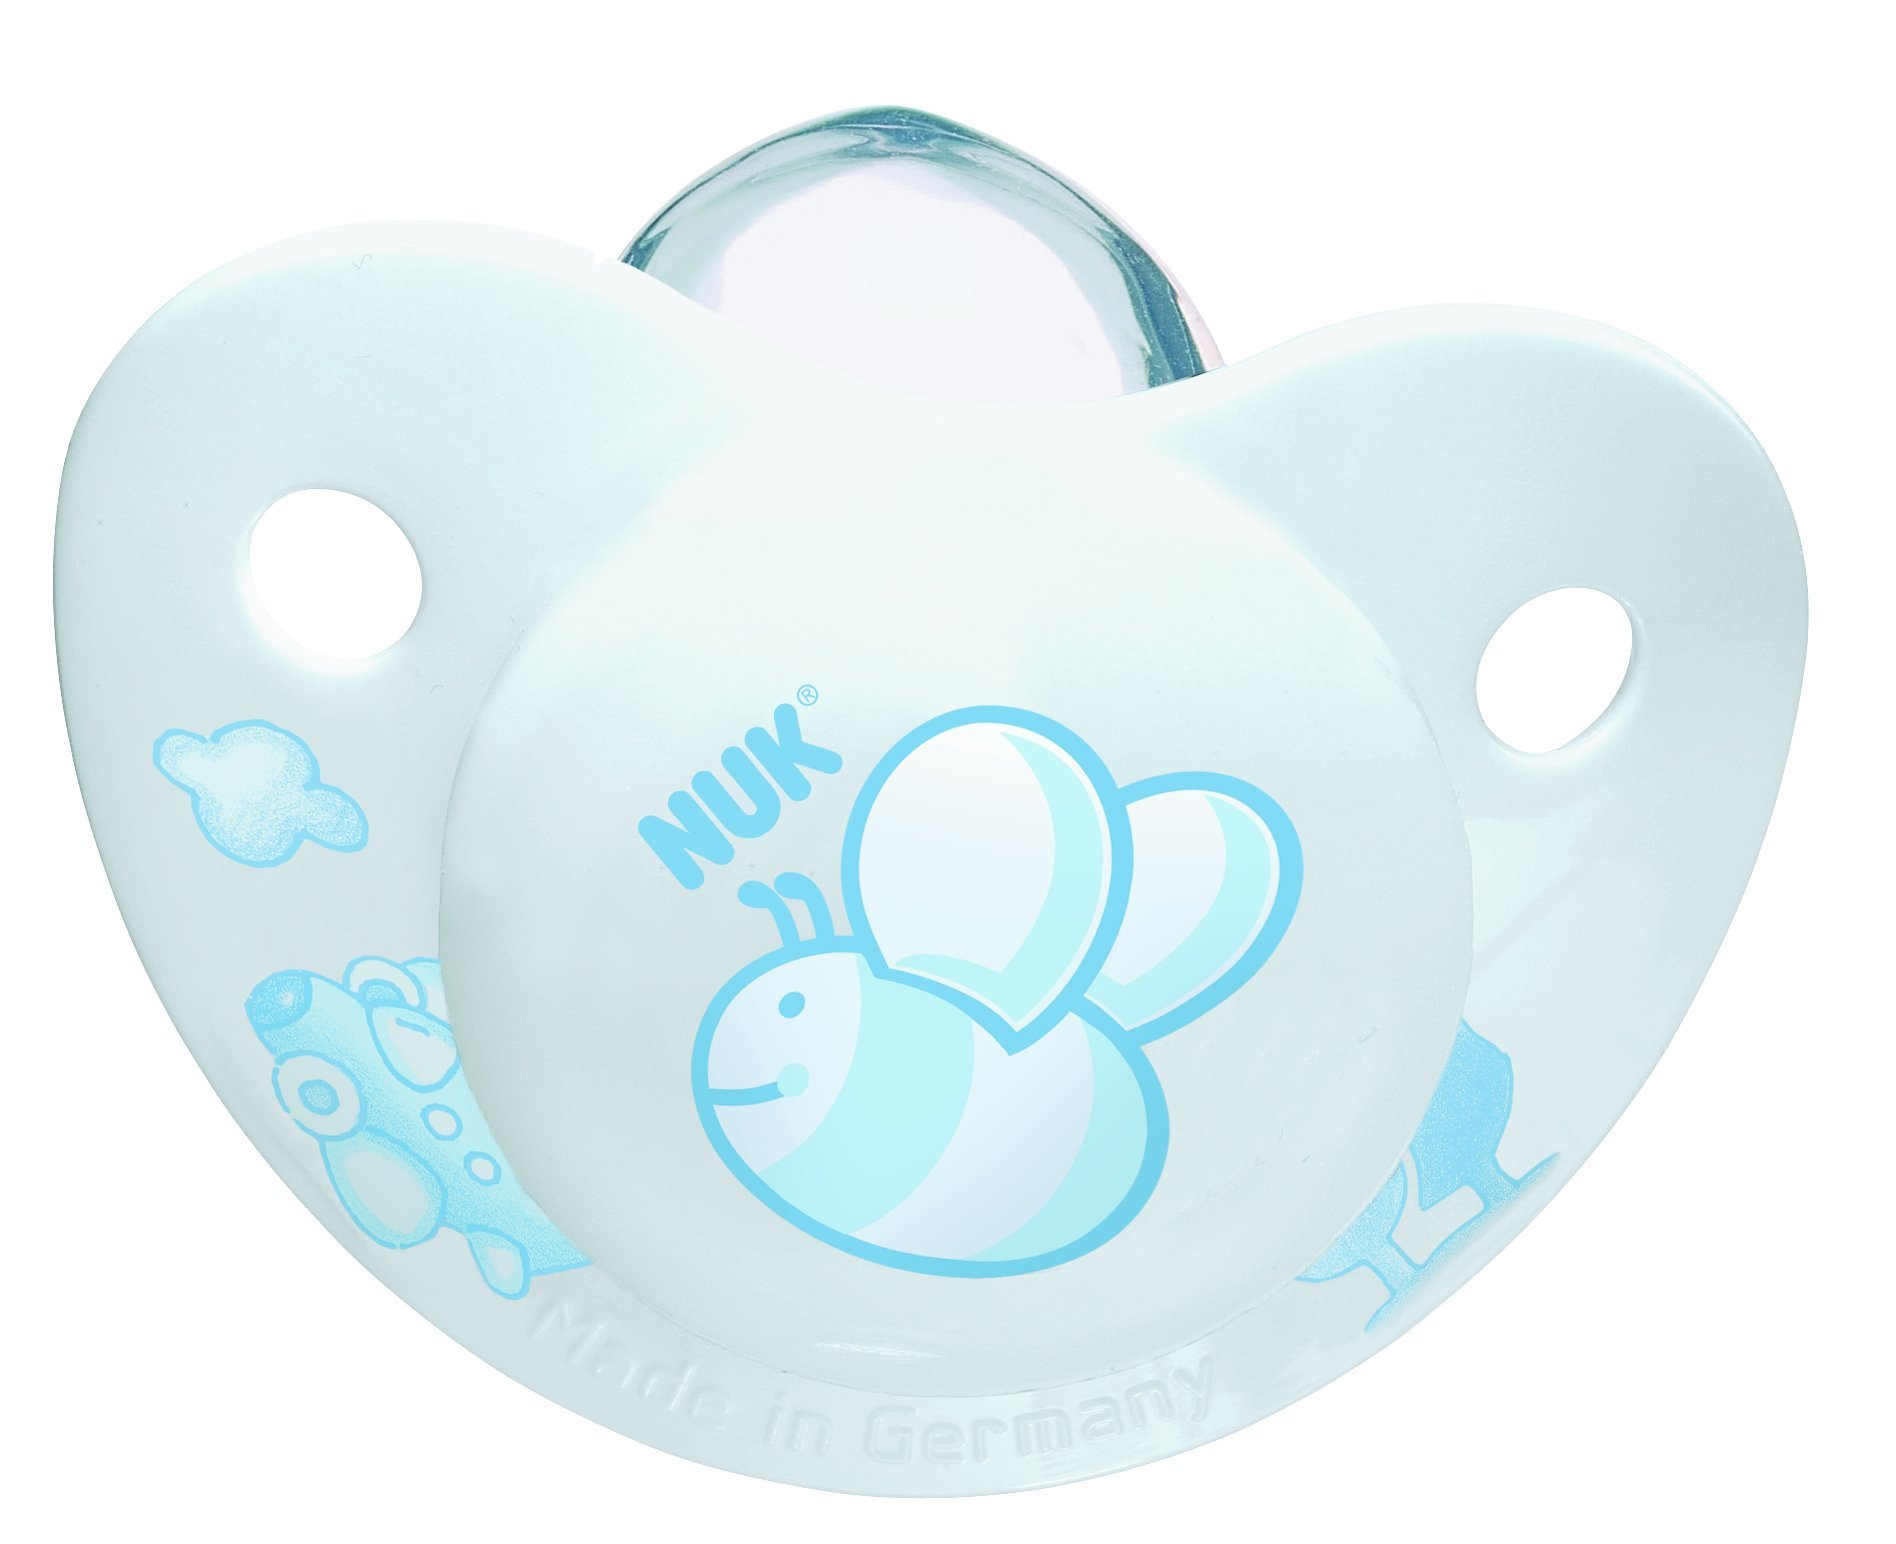 NUK Rose and Blue Silicone 2 Pack BPA Free Pacifier, Size 1, Colors May Vary (Discontinued by Manufacturer) by NUK